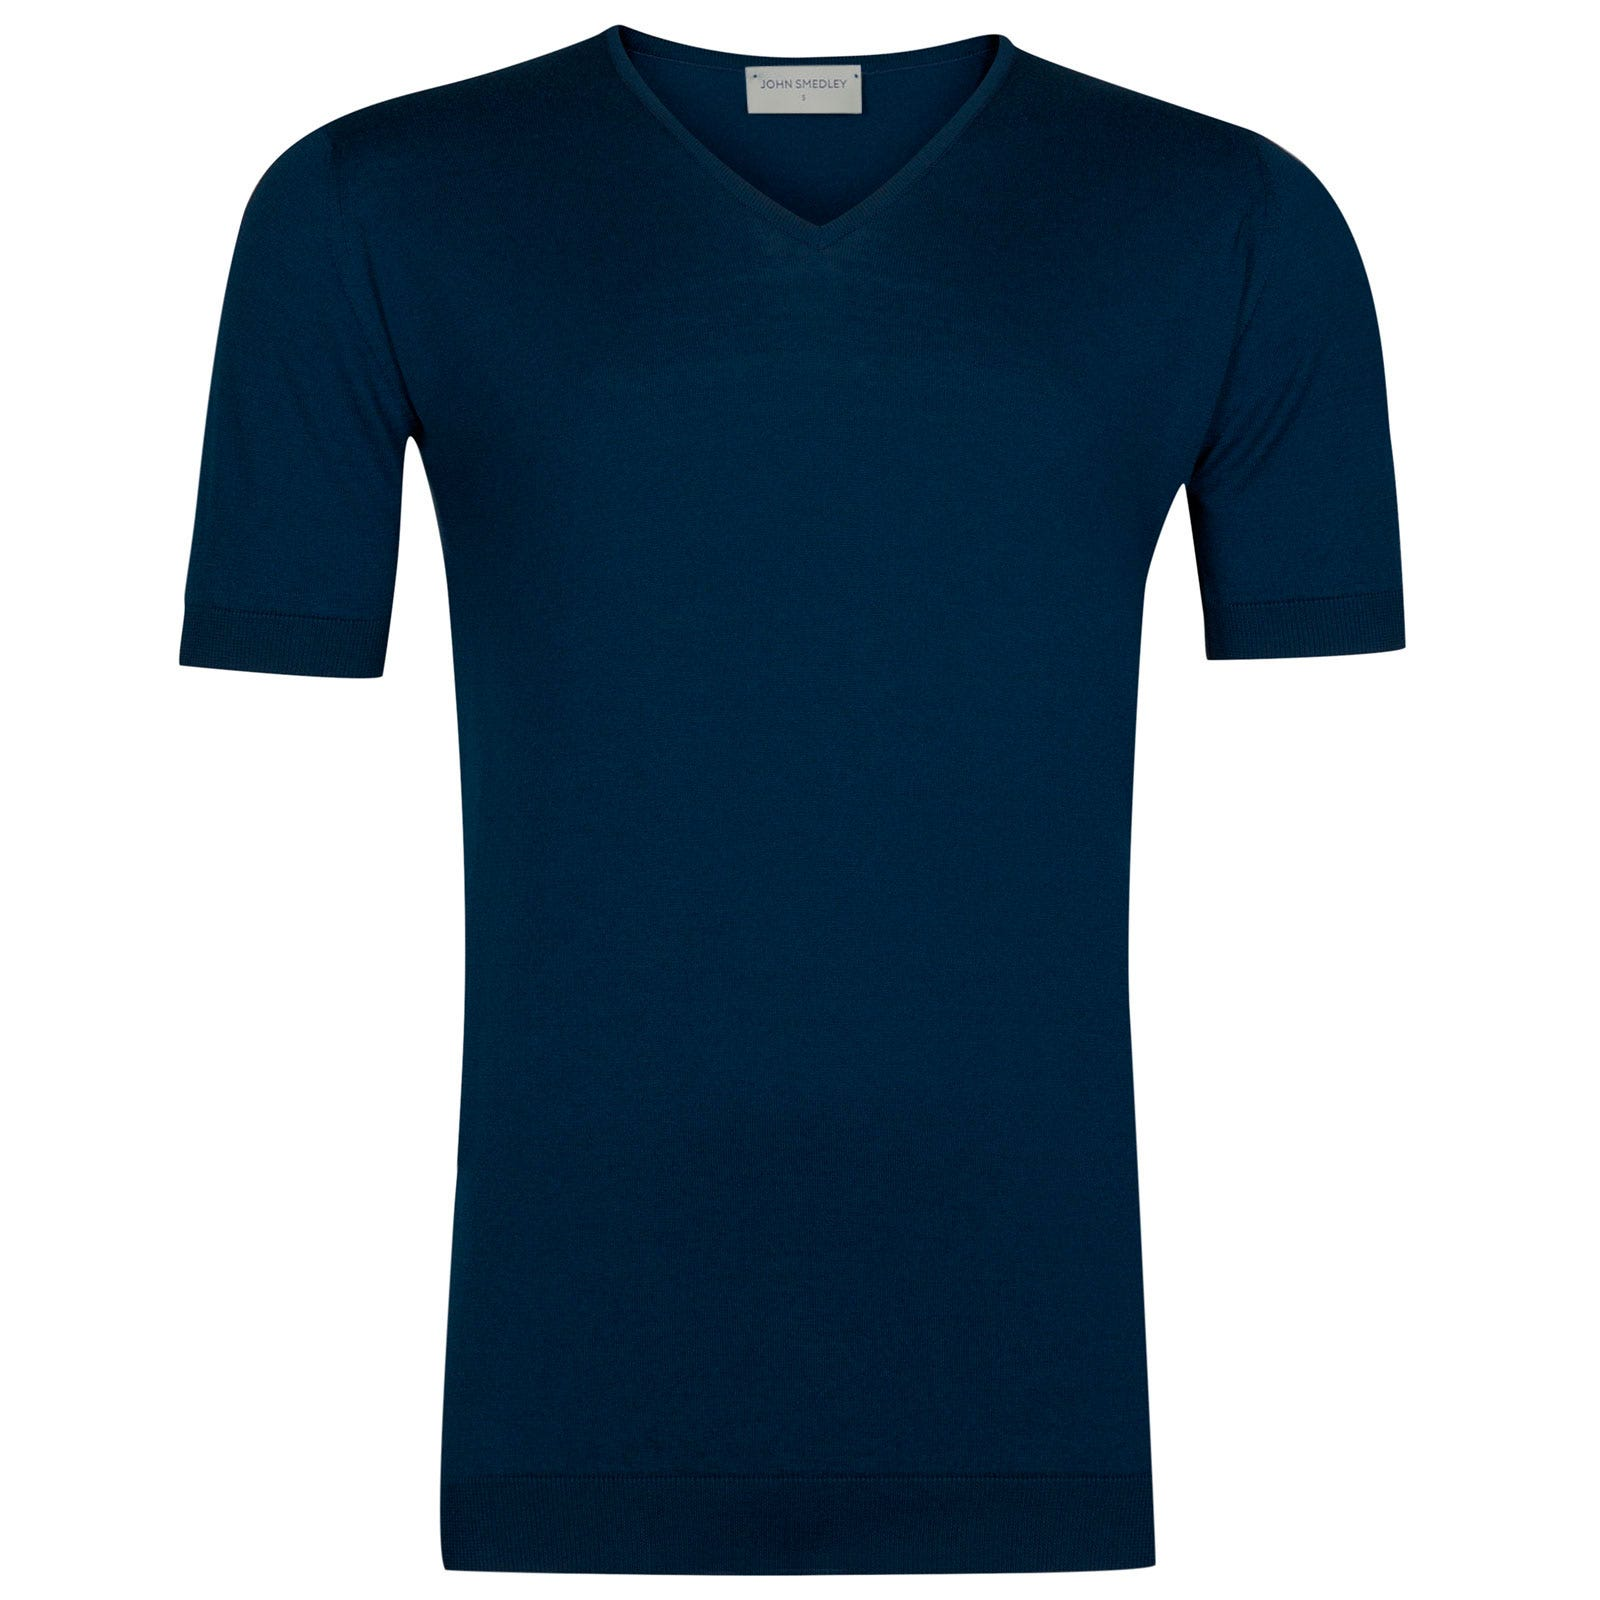 John Smedley Braedon Sea Island Cotton T-shirt in Indigo-L